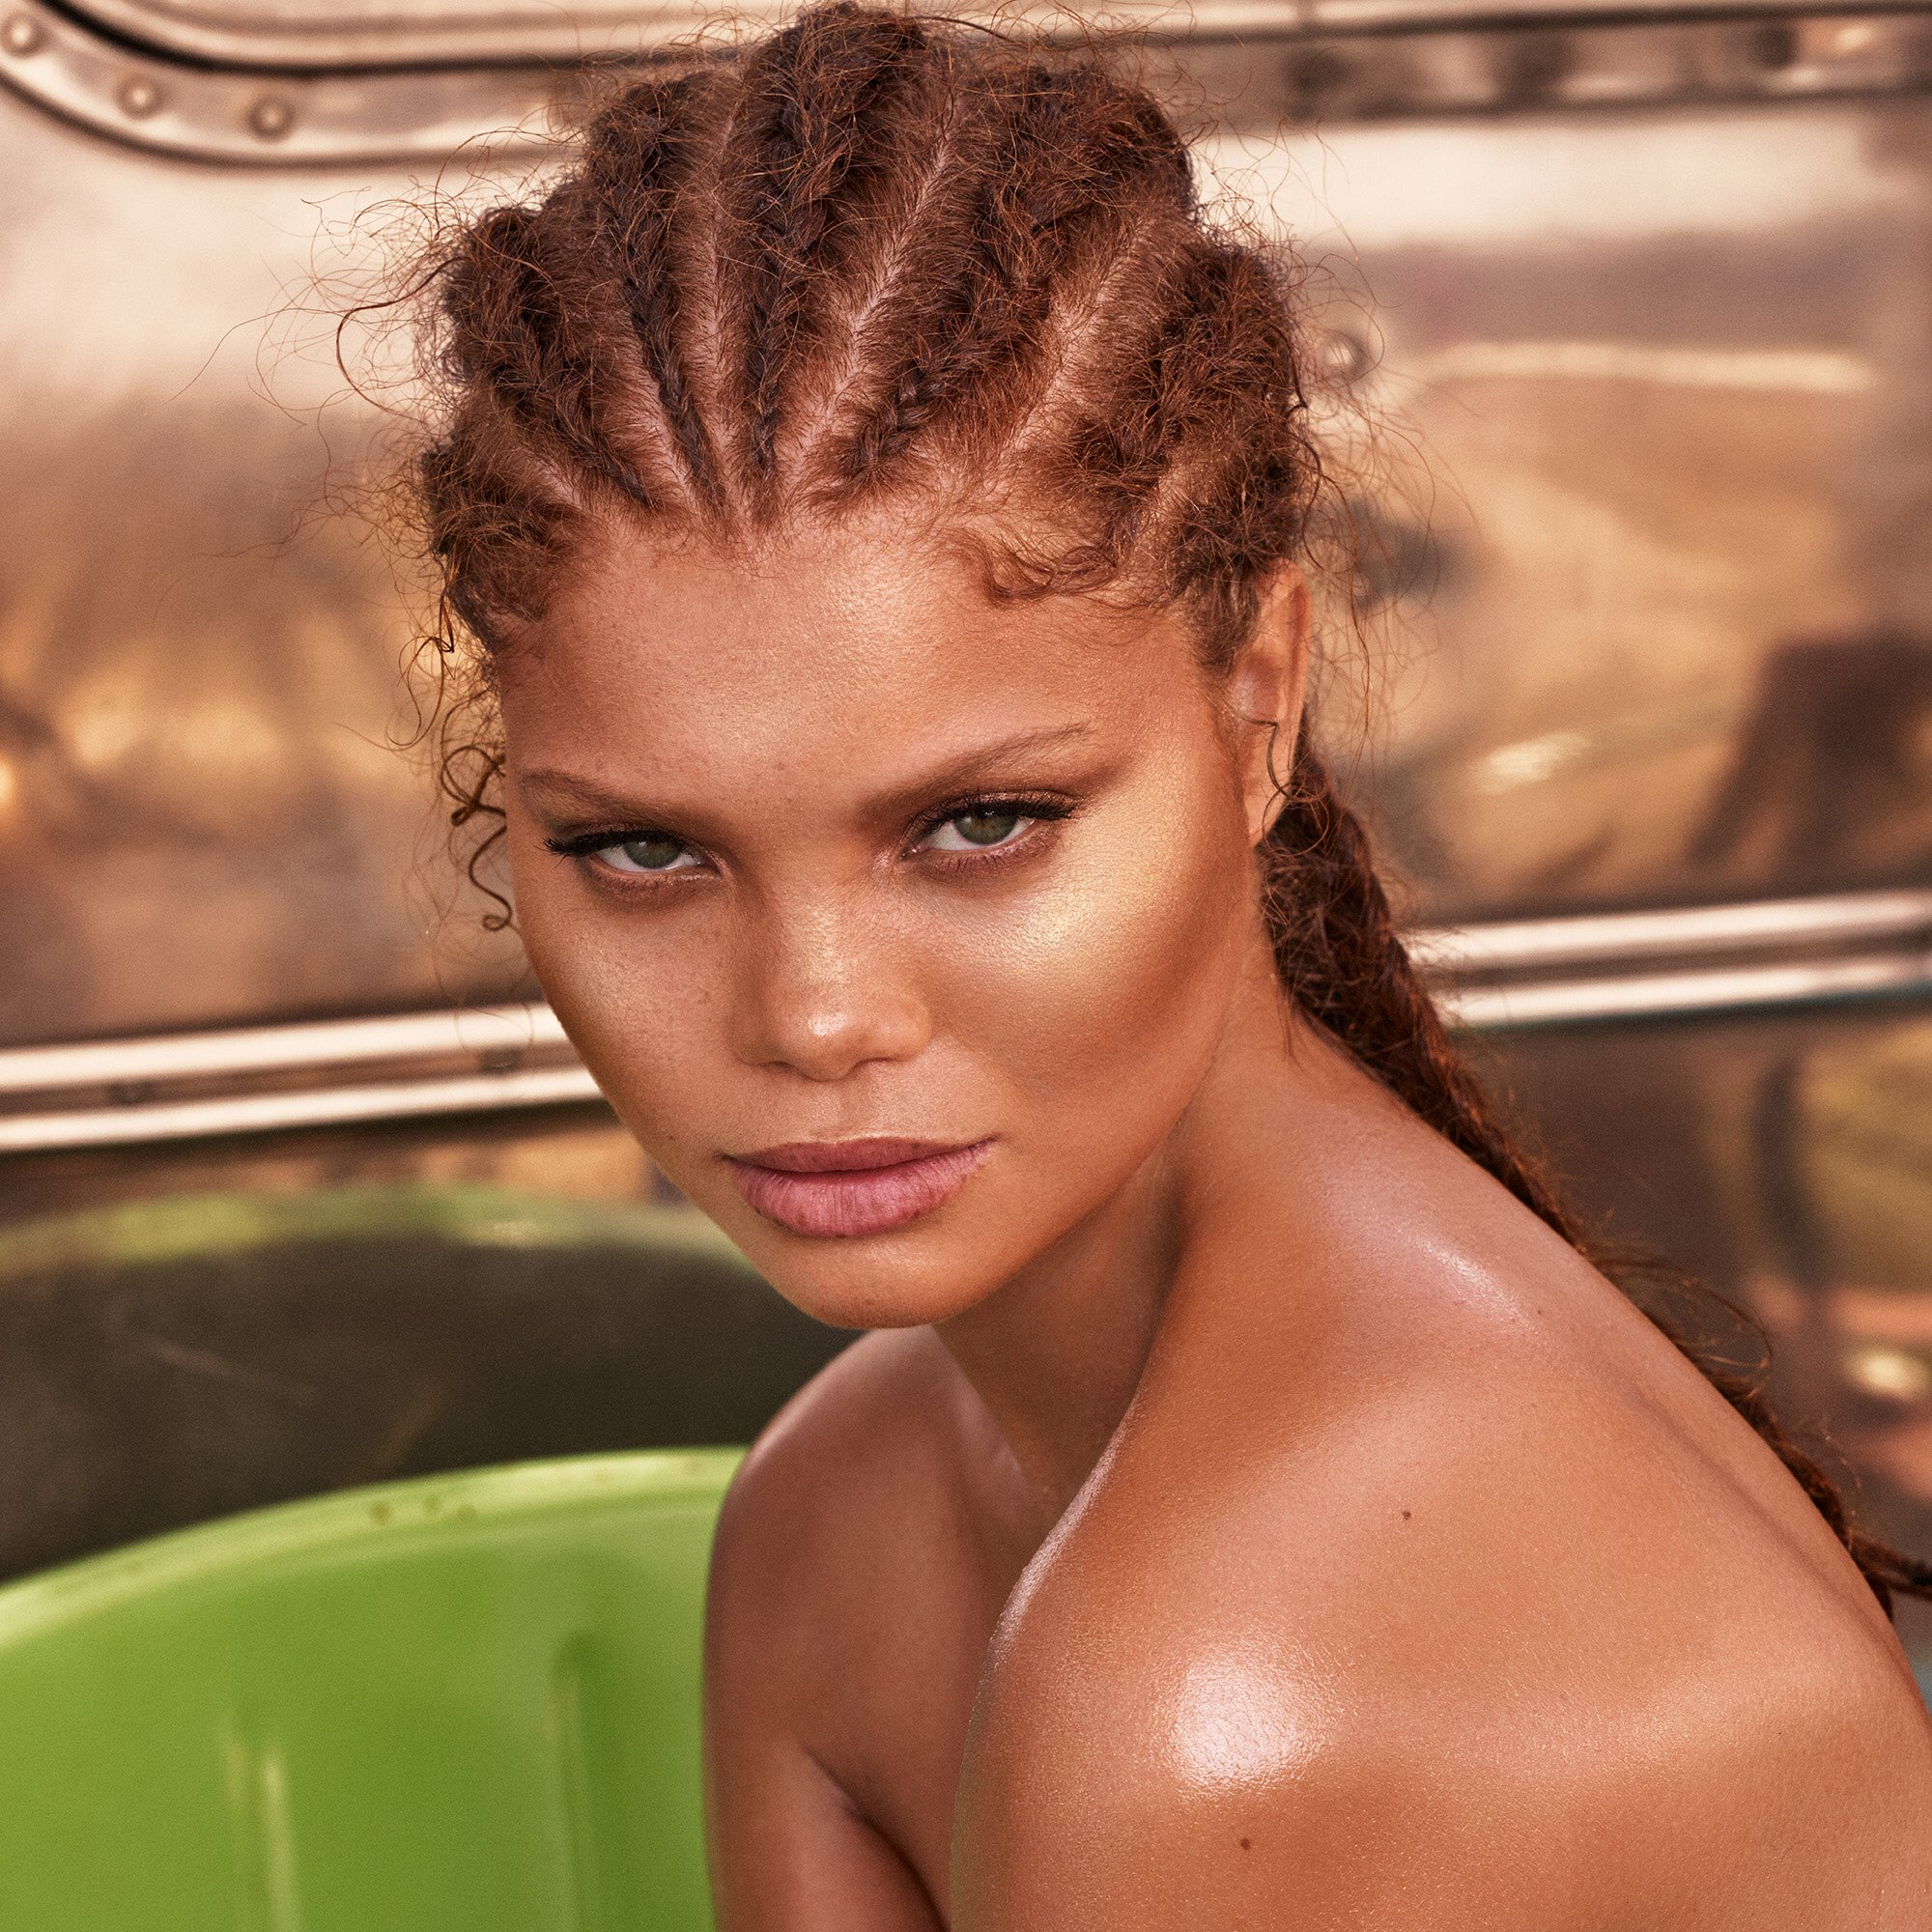 Pin by garmai. on hair + beauty. (With images) Fenty